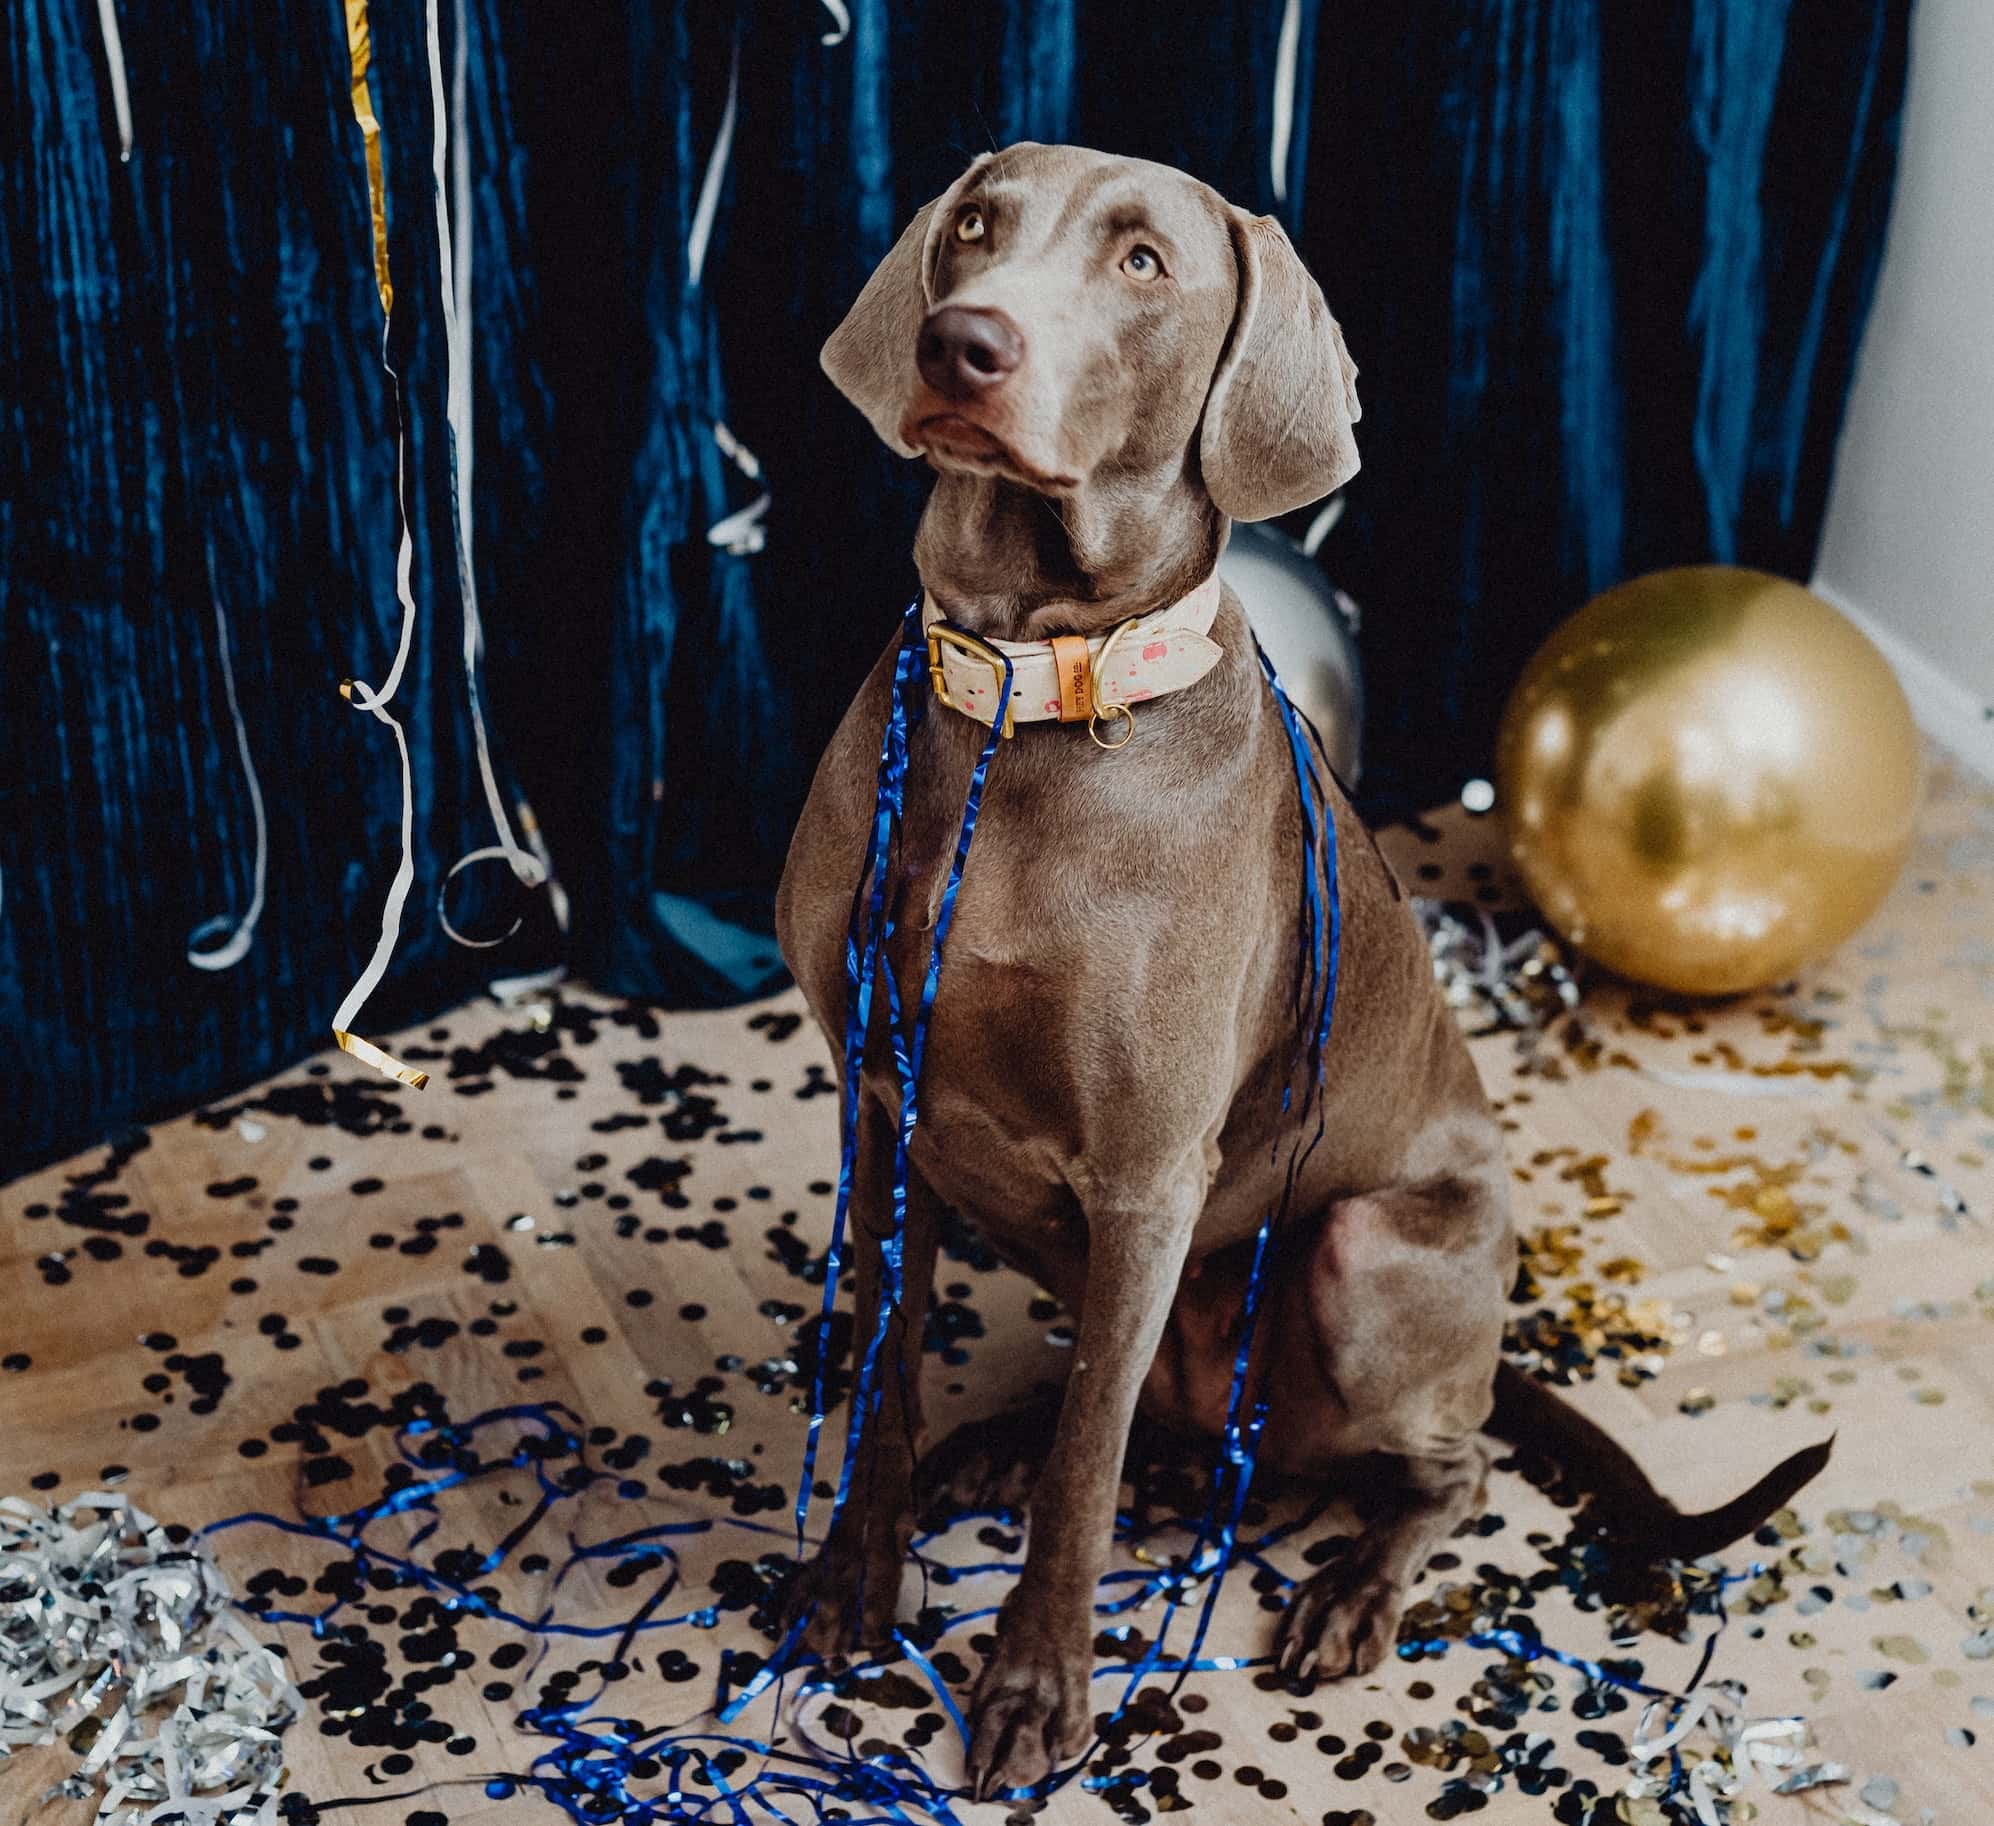 Dog at new year with party decorations